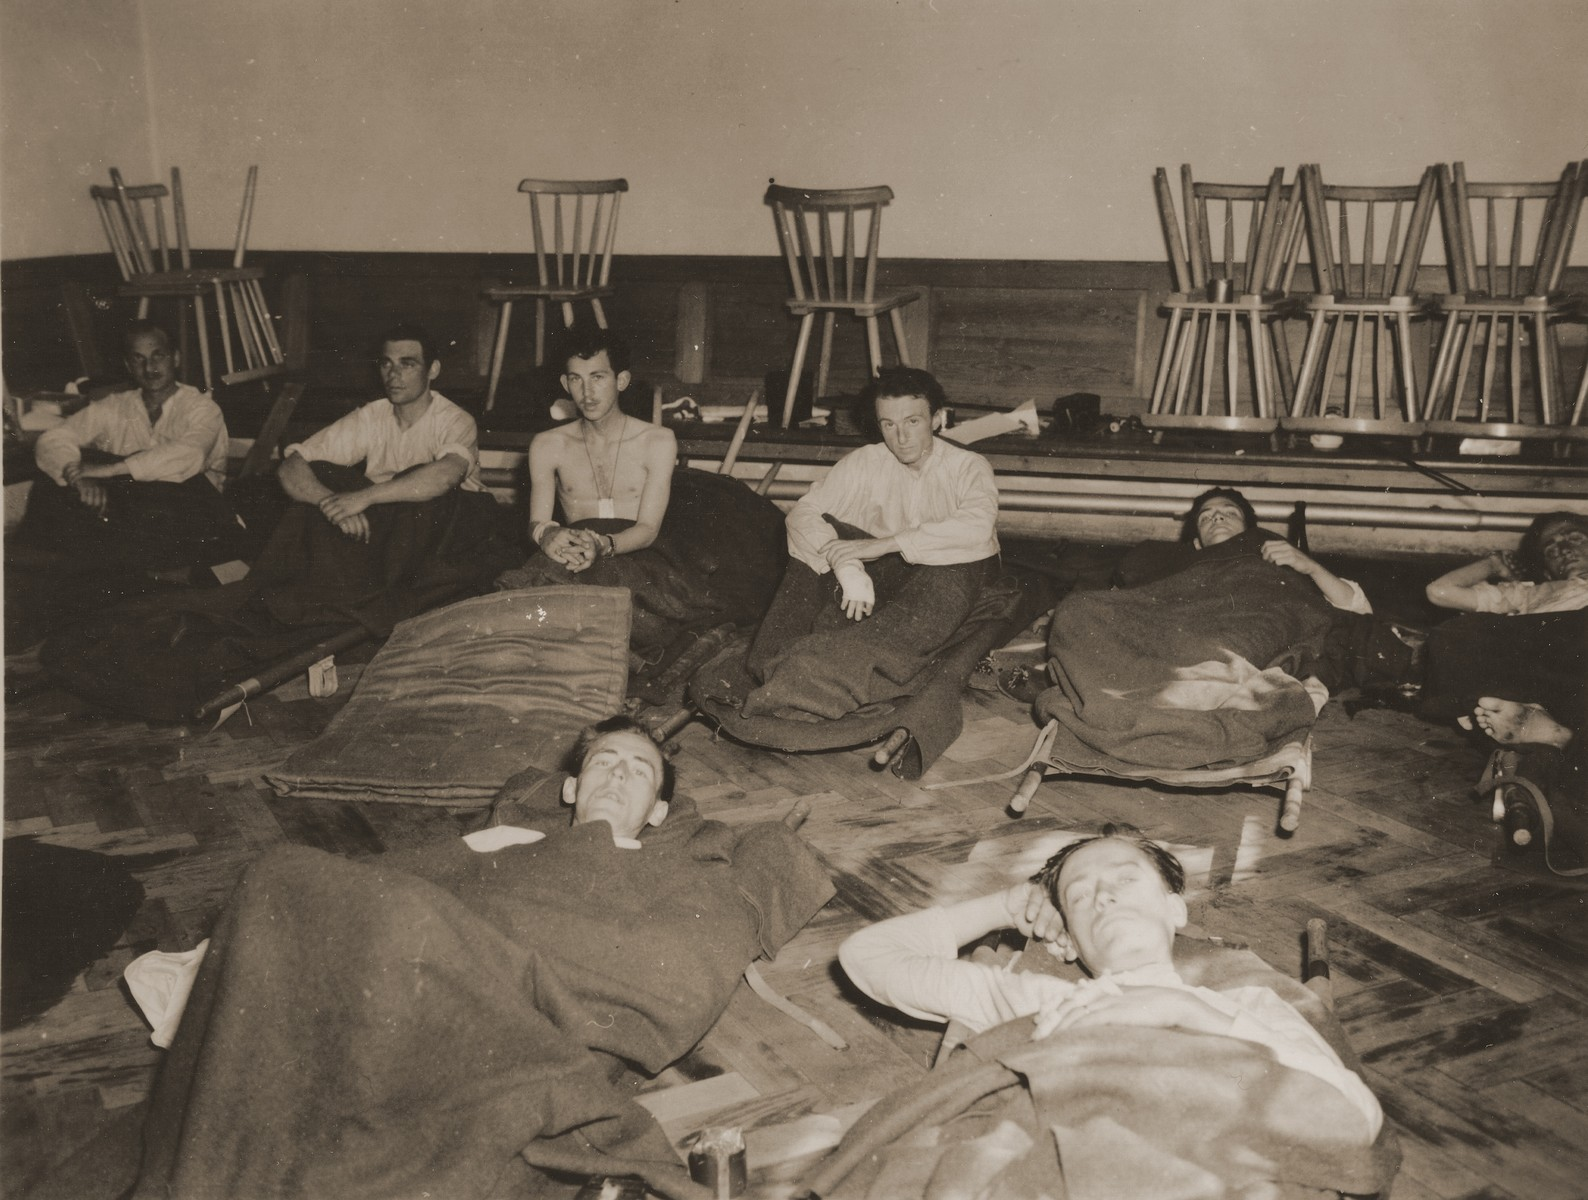 American POWs who survived a death march from the Berga concentration camp, recuperate at a U.S. Army hospital in Cham, Germany.  Gerald Daub is sitting up in the back row, second from left.  Peter Iosso is lying on the stretcher, top right.  Also pictured is Richard S. Kellogg.